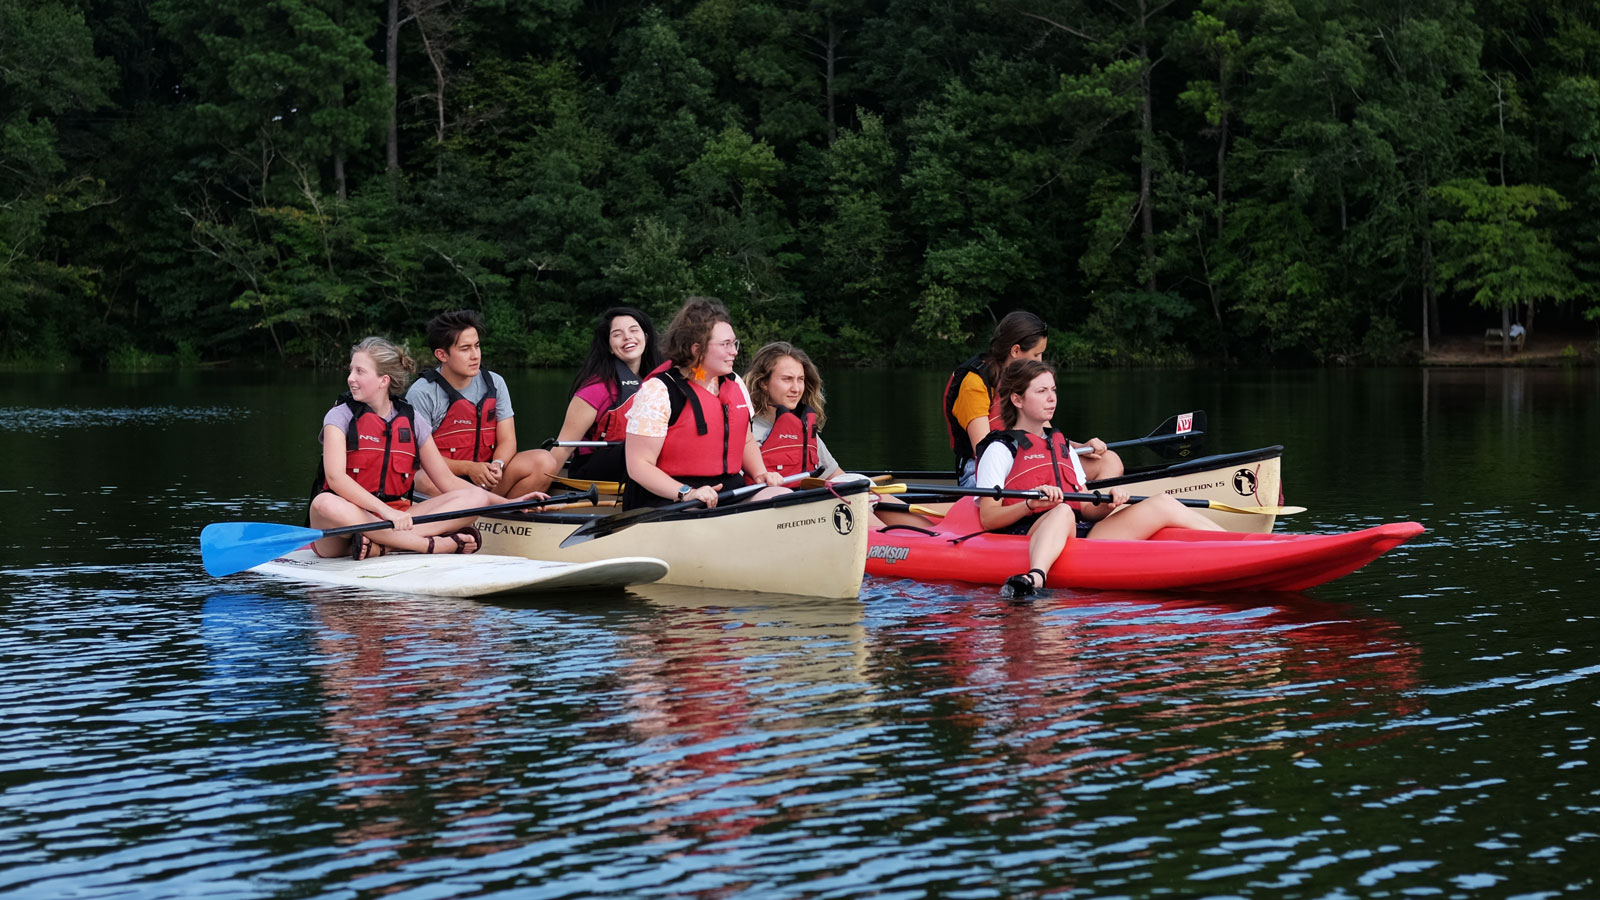 A group of students relax in canoes and kayaks on a lake.